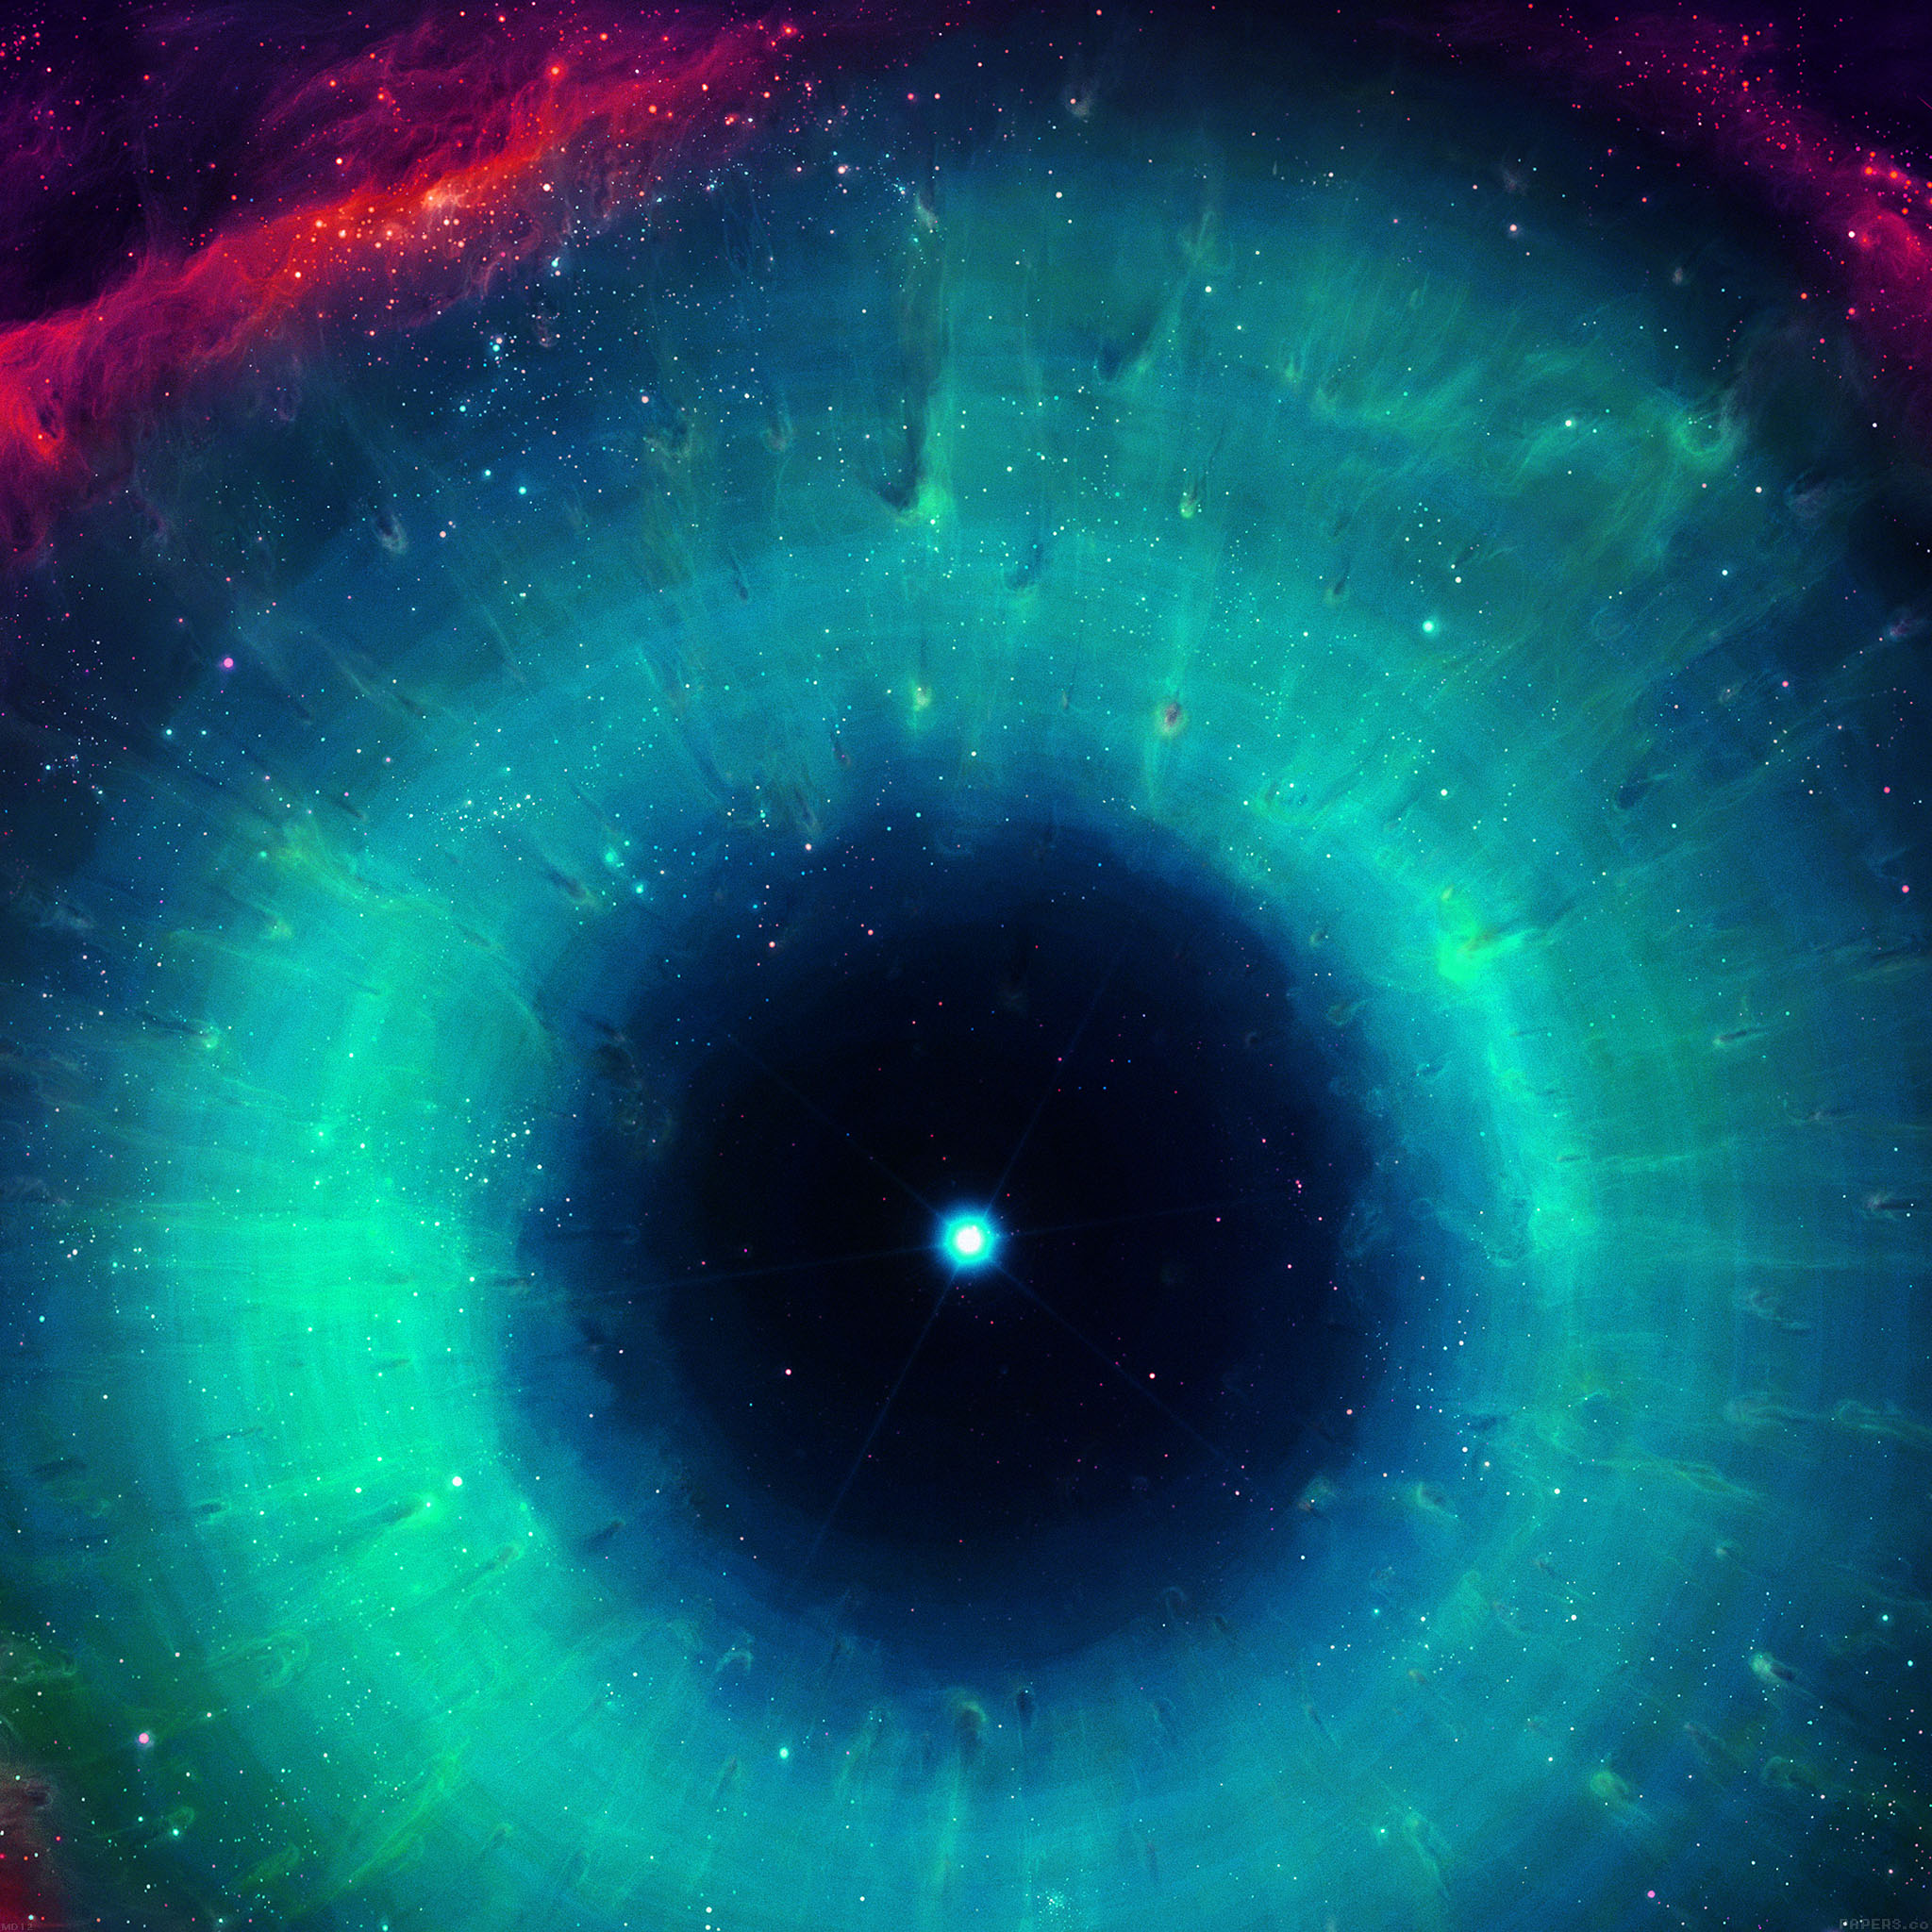 Apple Iphone 5 Wallpapers Hd Free Download Md12 Wallpaper Galaxy Eye Center Gren Space Stars Papers Co